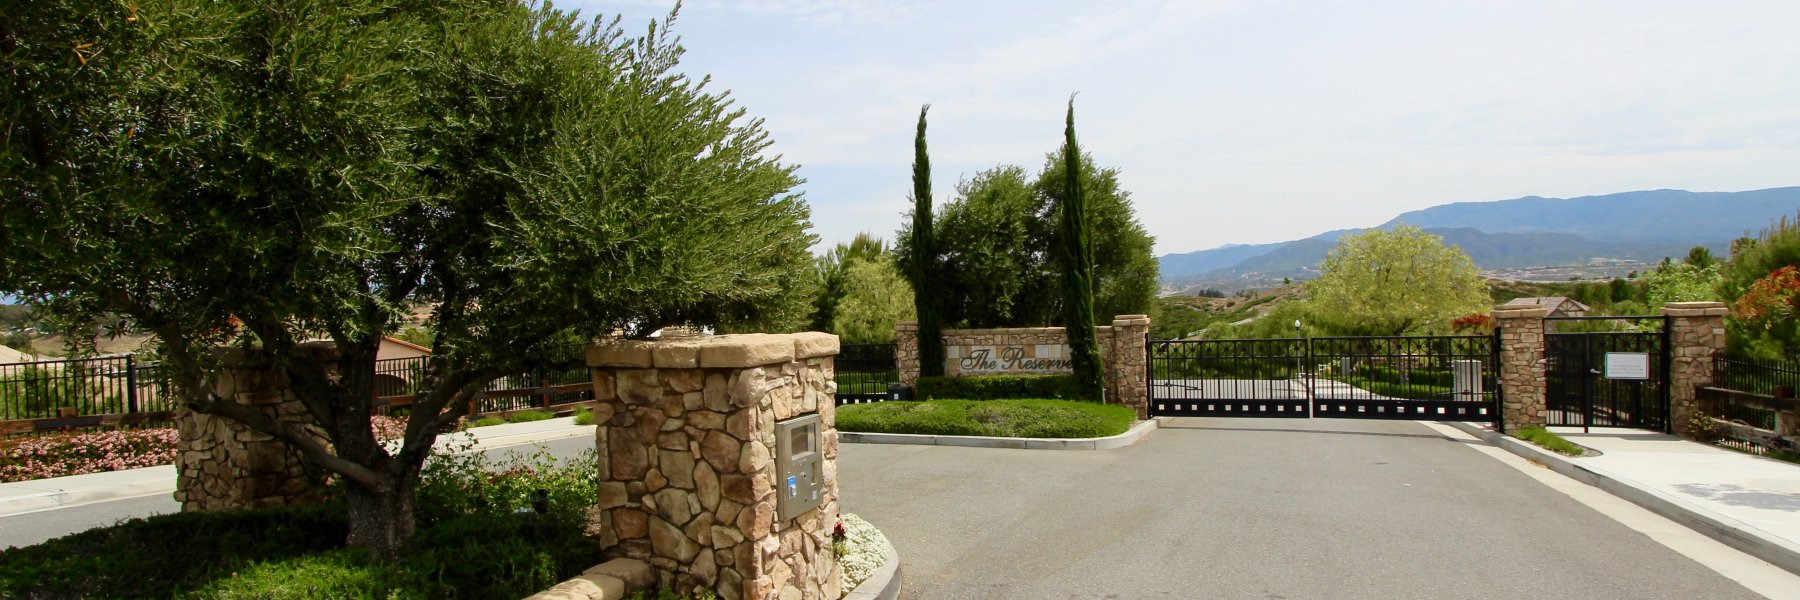 The Reserve at Crowne Hill is a community of homes in Temecula California